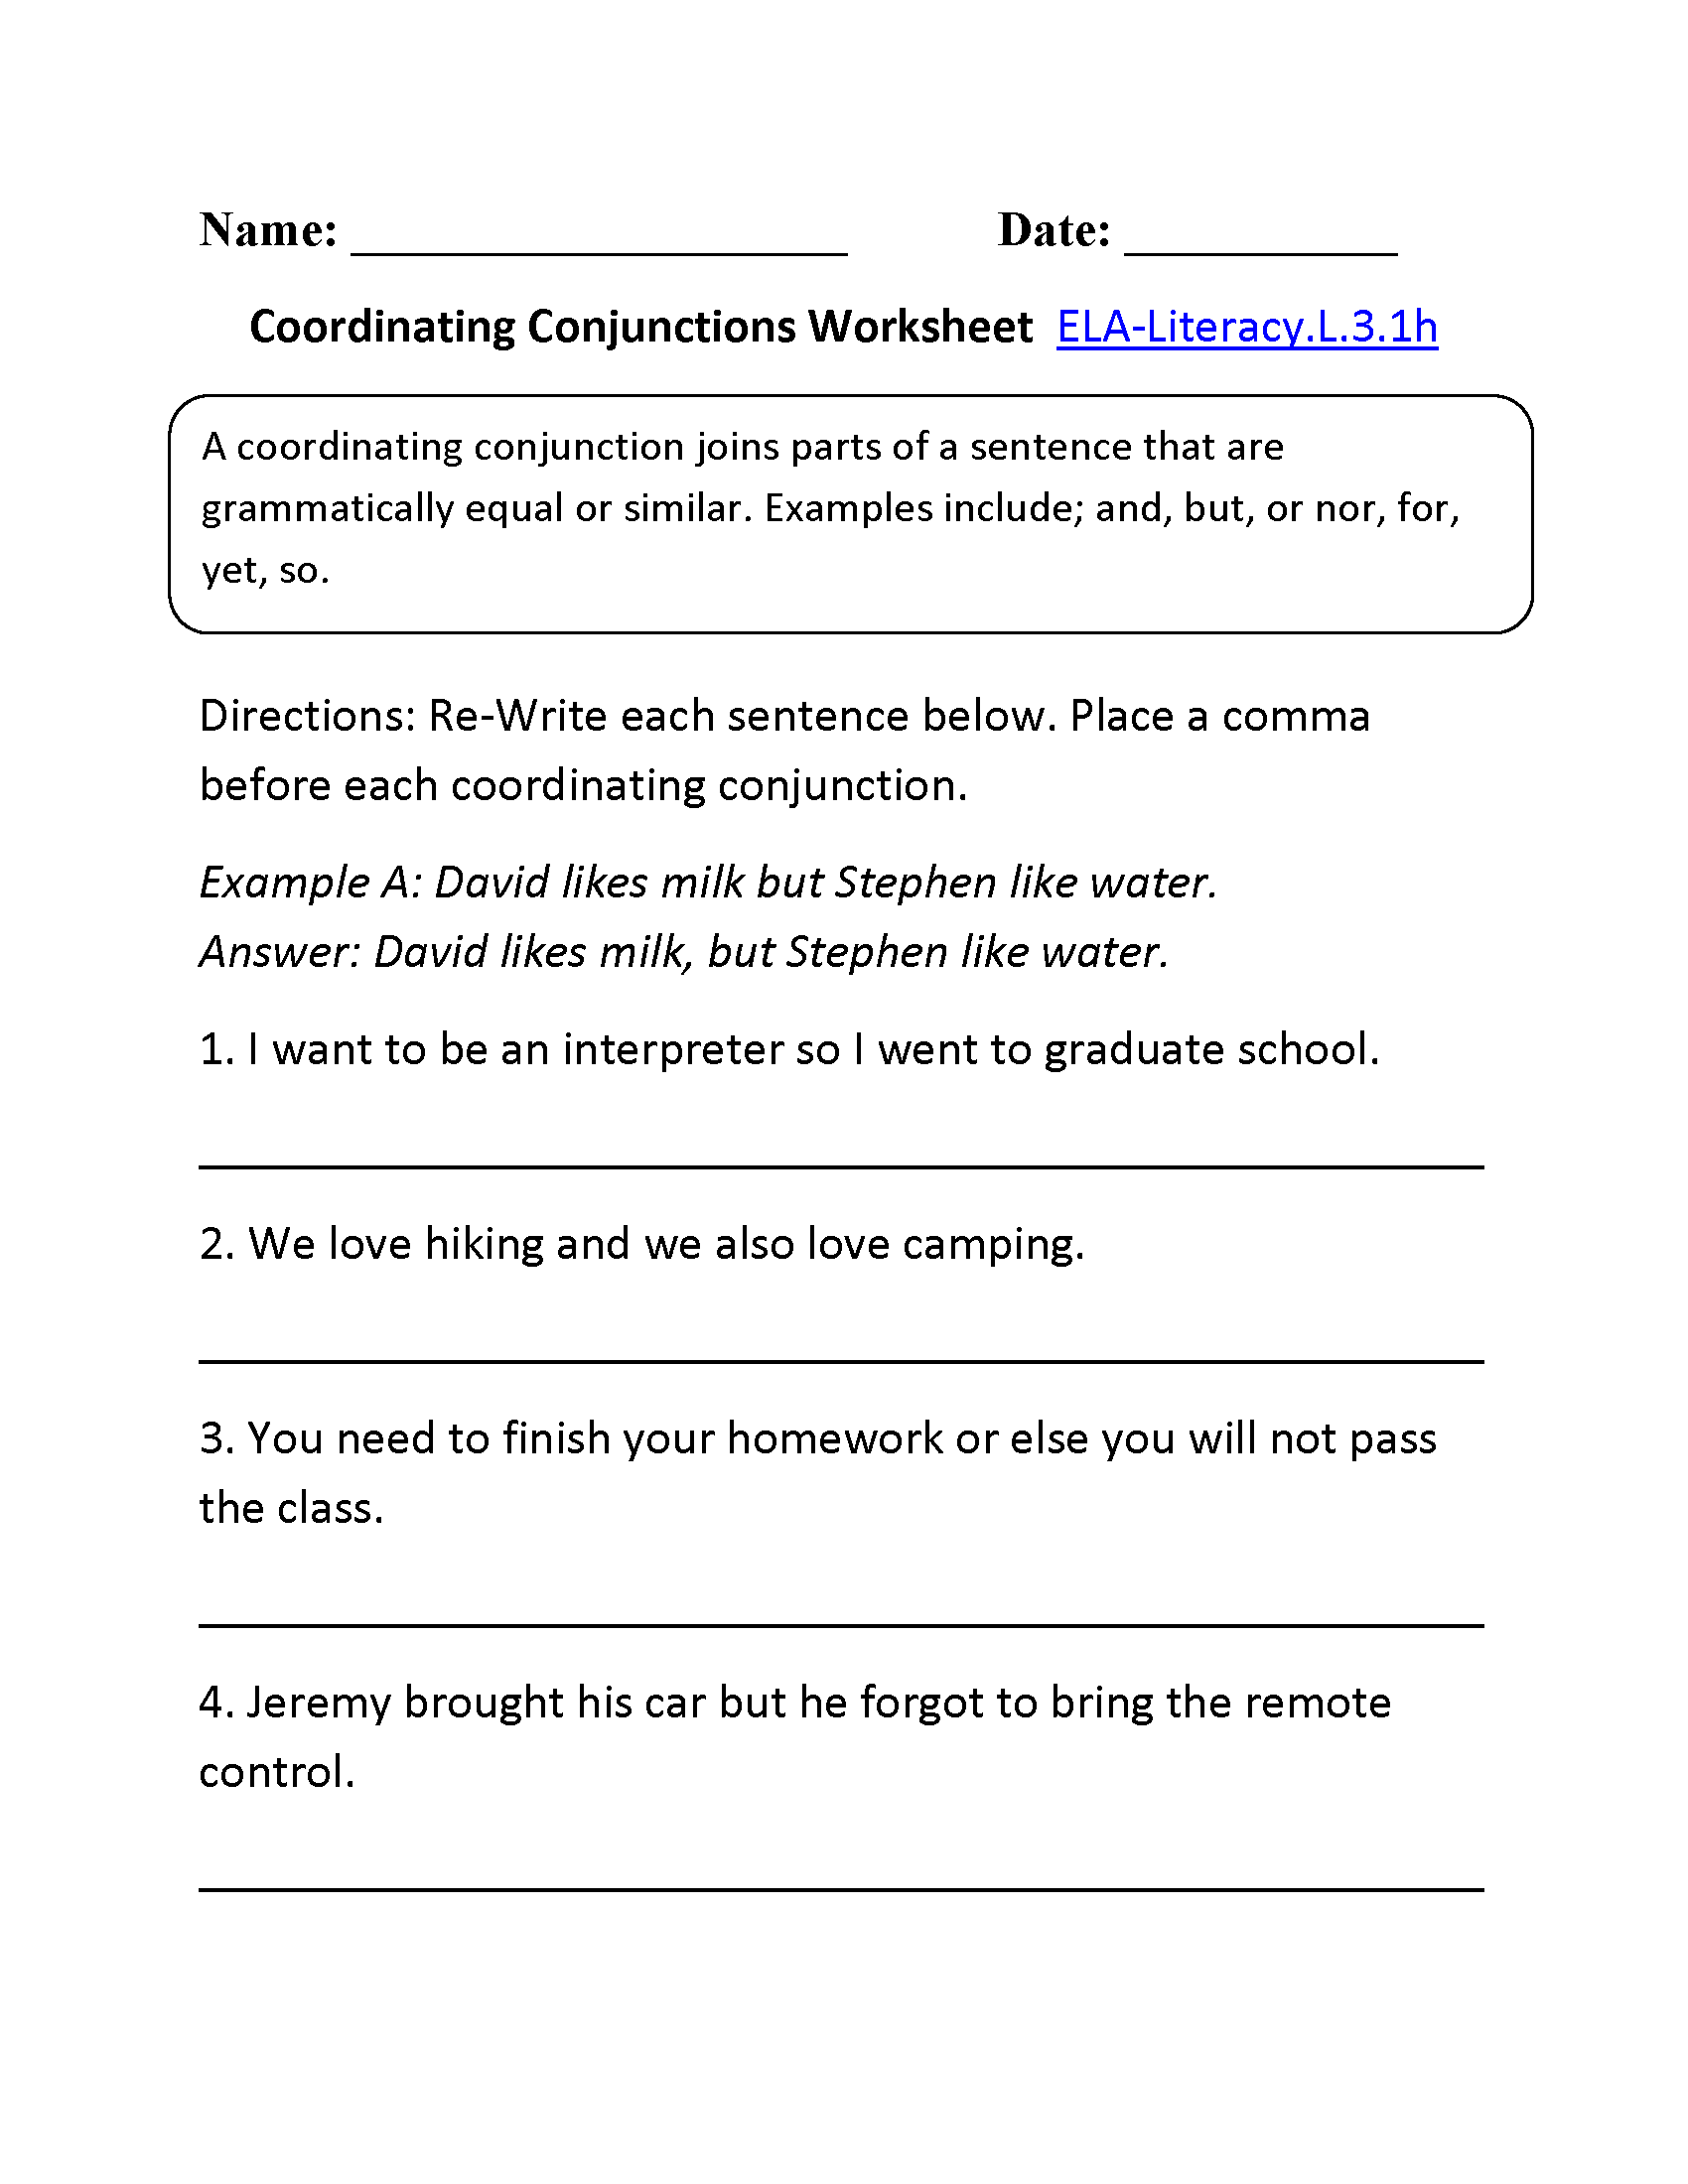 Worksheets Correlative Conjunctions Worksheets coordinating conjunctions worksheet 1 l 3 pinterest 1